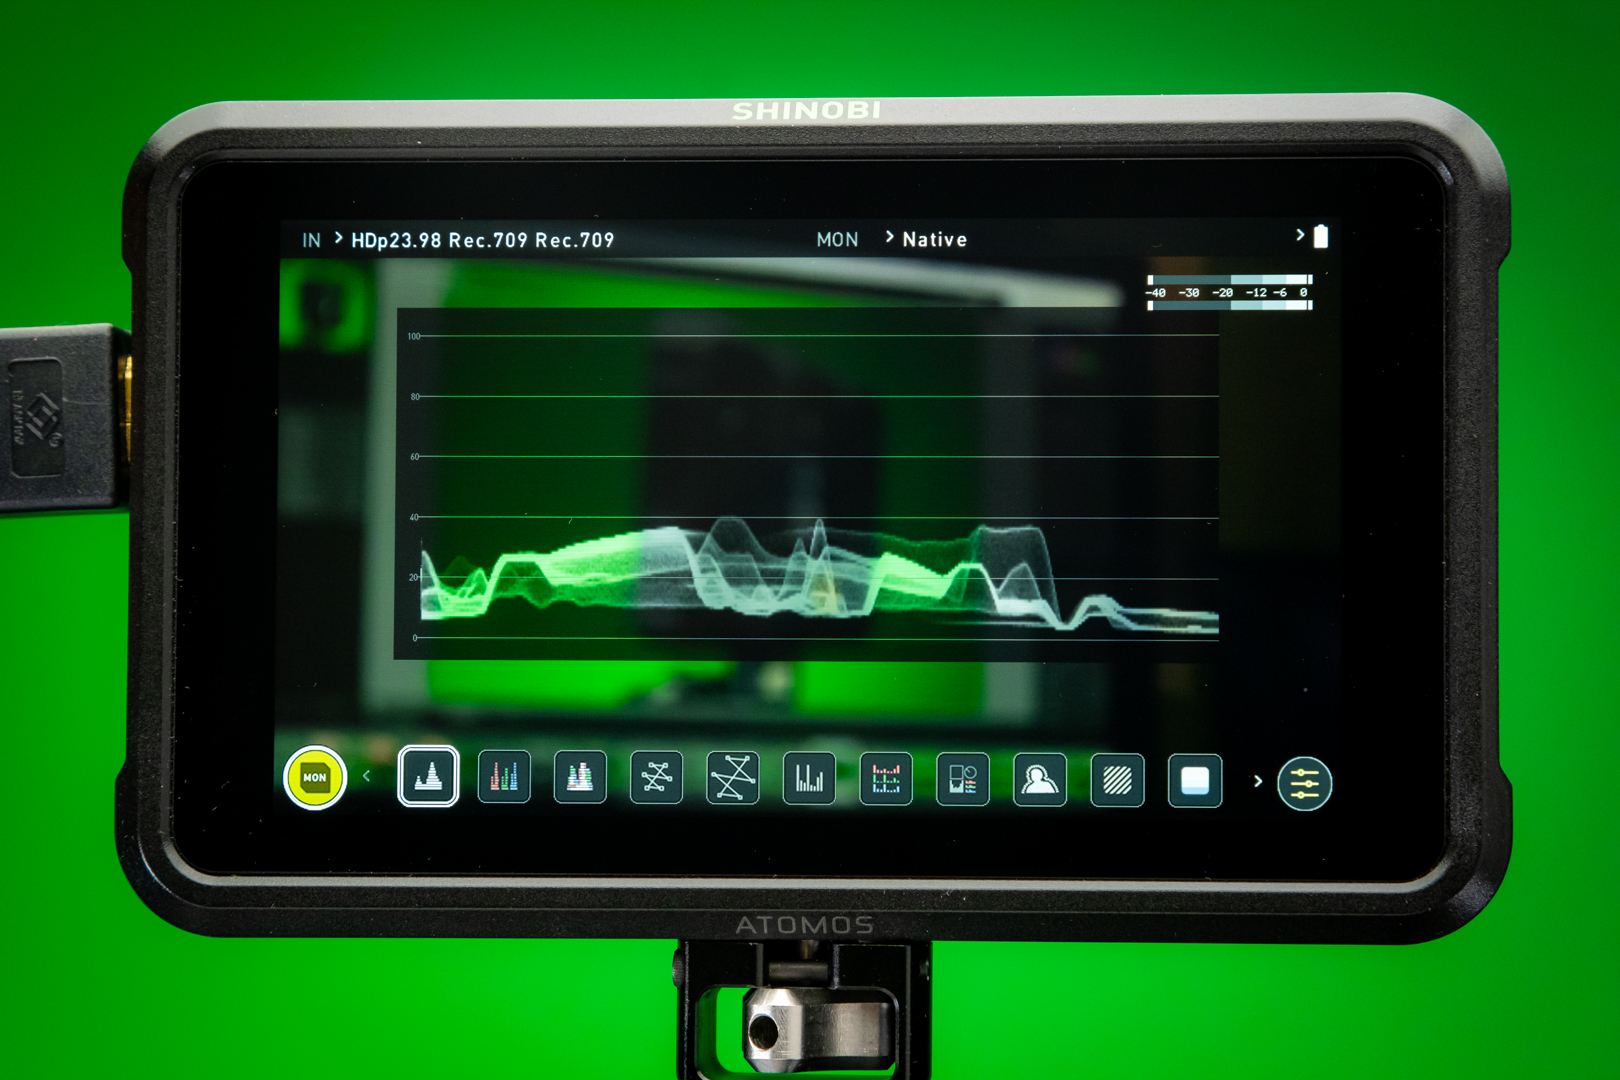 Hands-on with the Atomos Shinobi  Is it good enough for pros